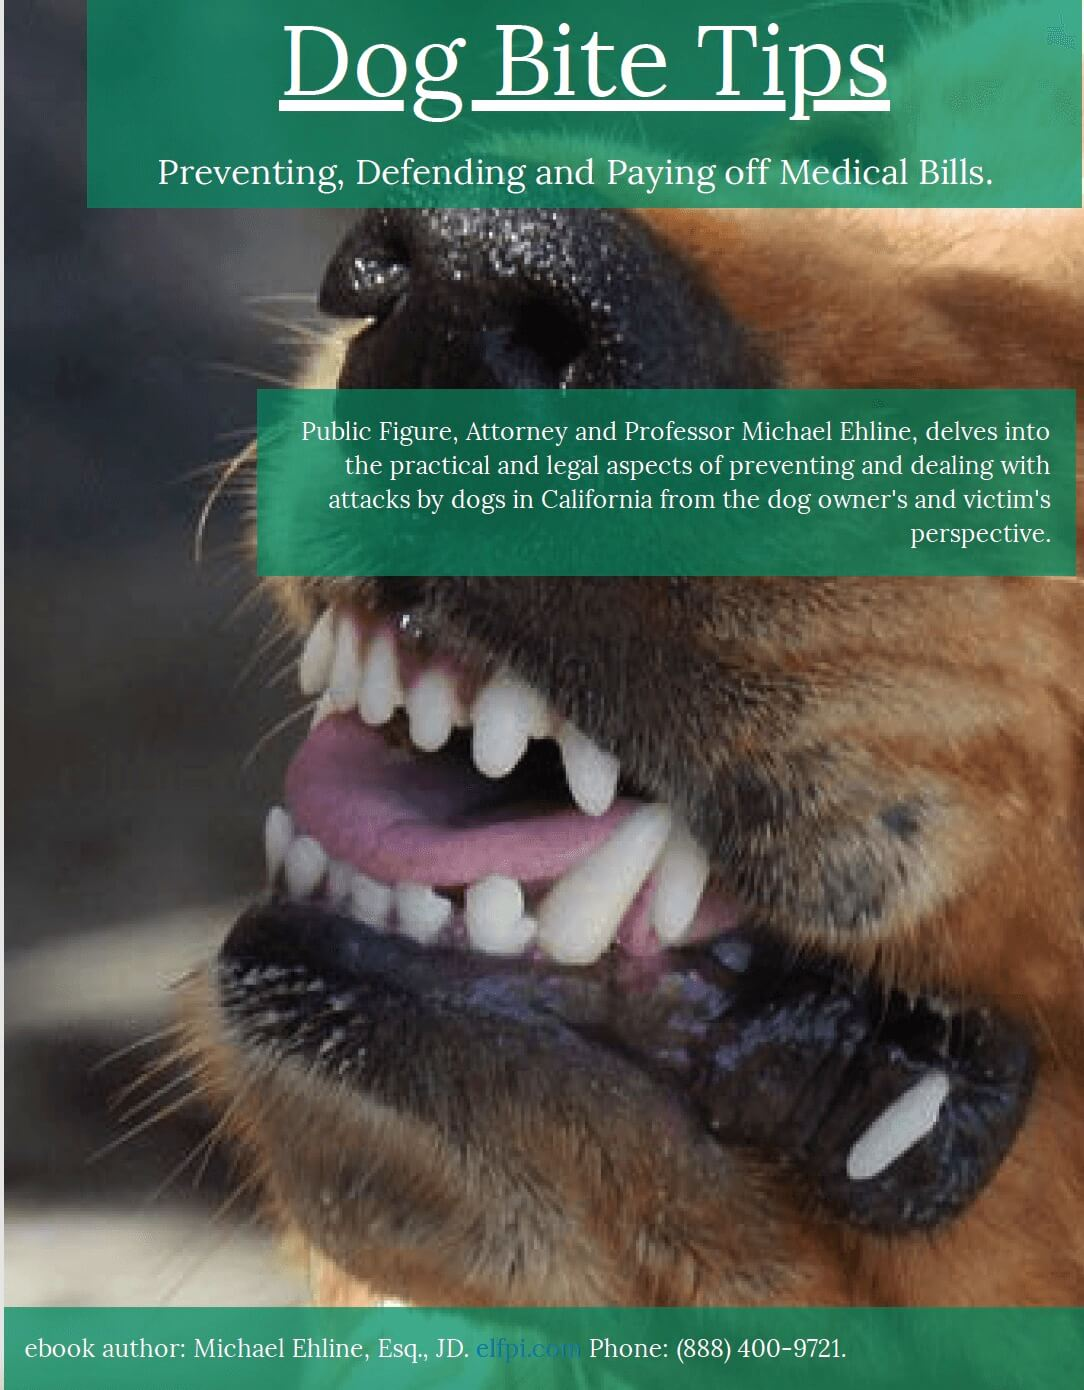 Dog bite tips, preventing, defending and fighting off dog attacks. By world famous, local Los Angeles dog bite lawyer Michael Ehline